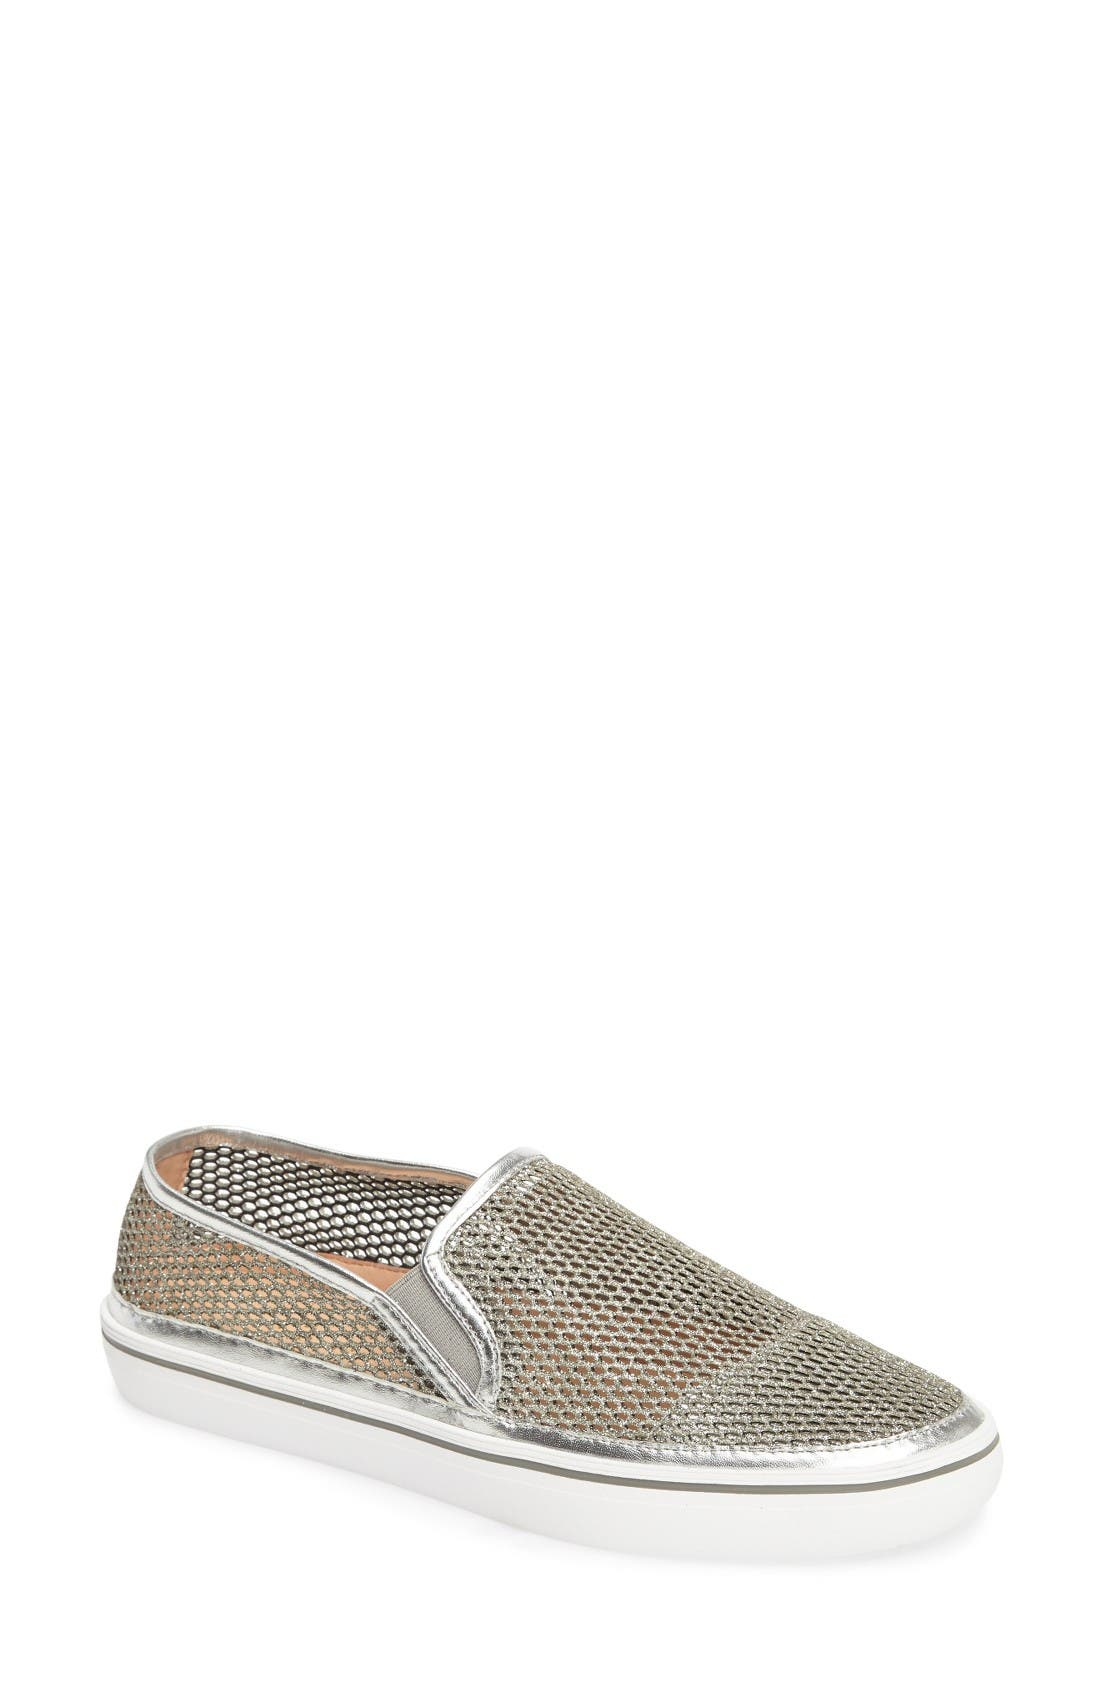 KATE SPADE NEW YORK sallie metallic mesh slip-on